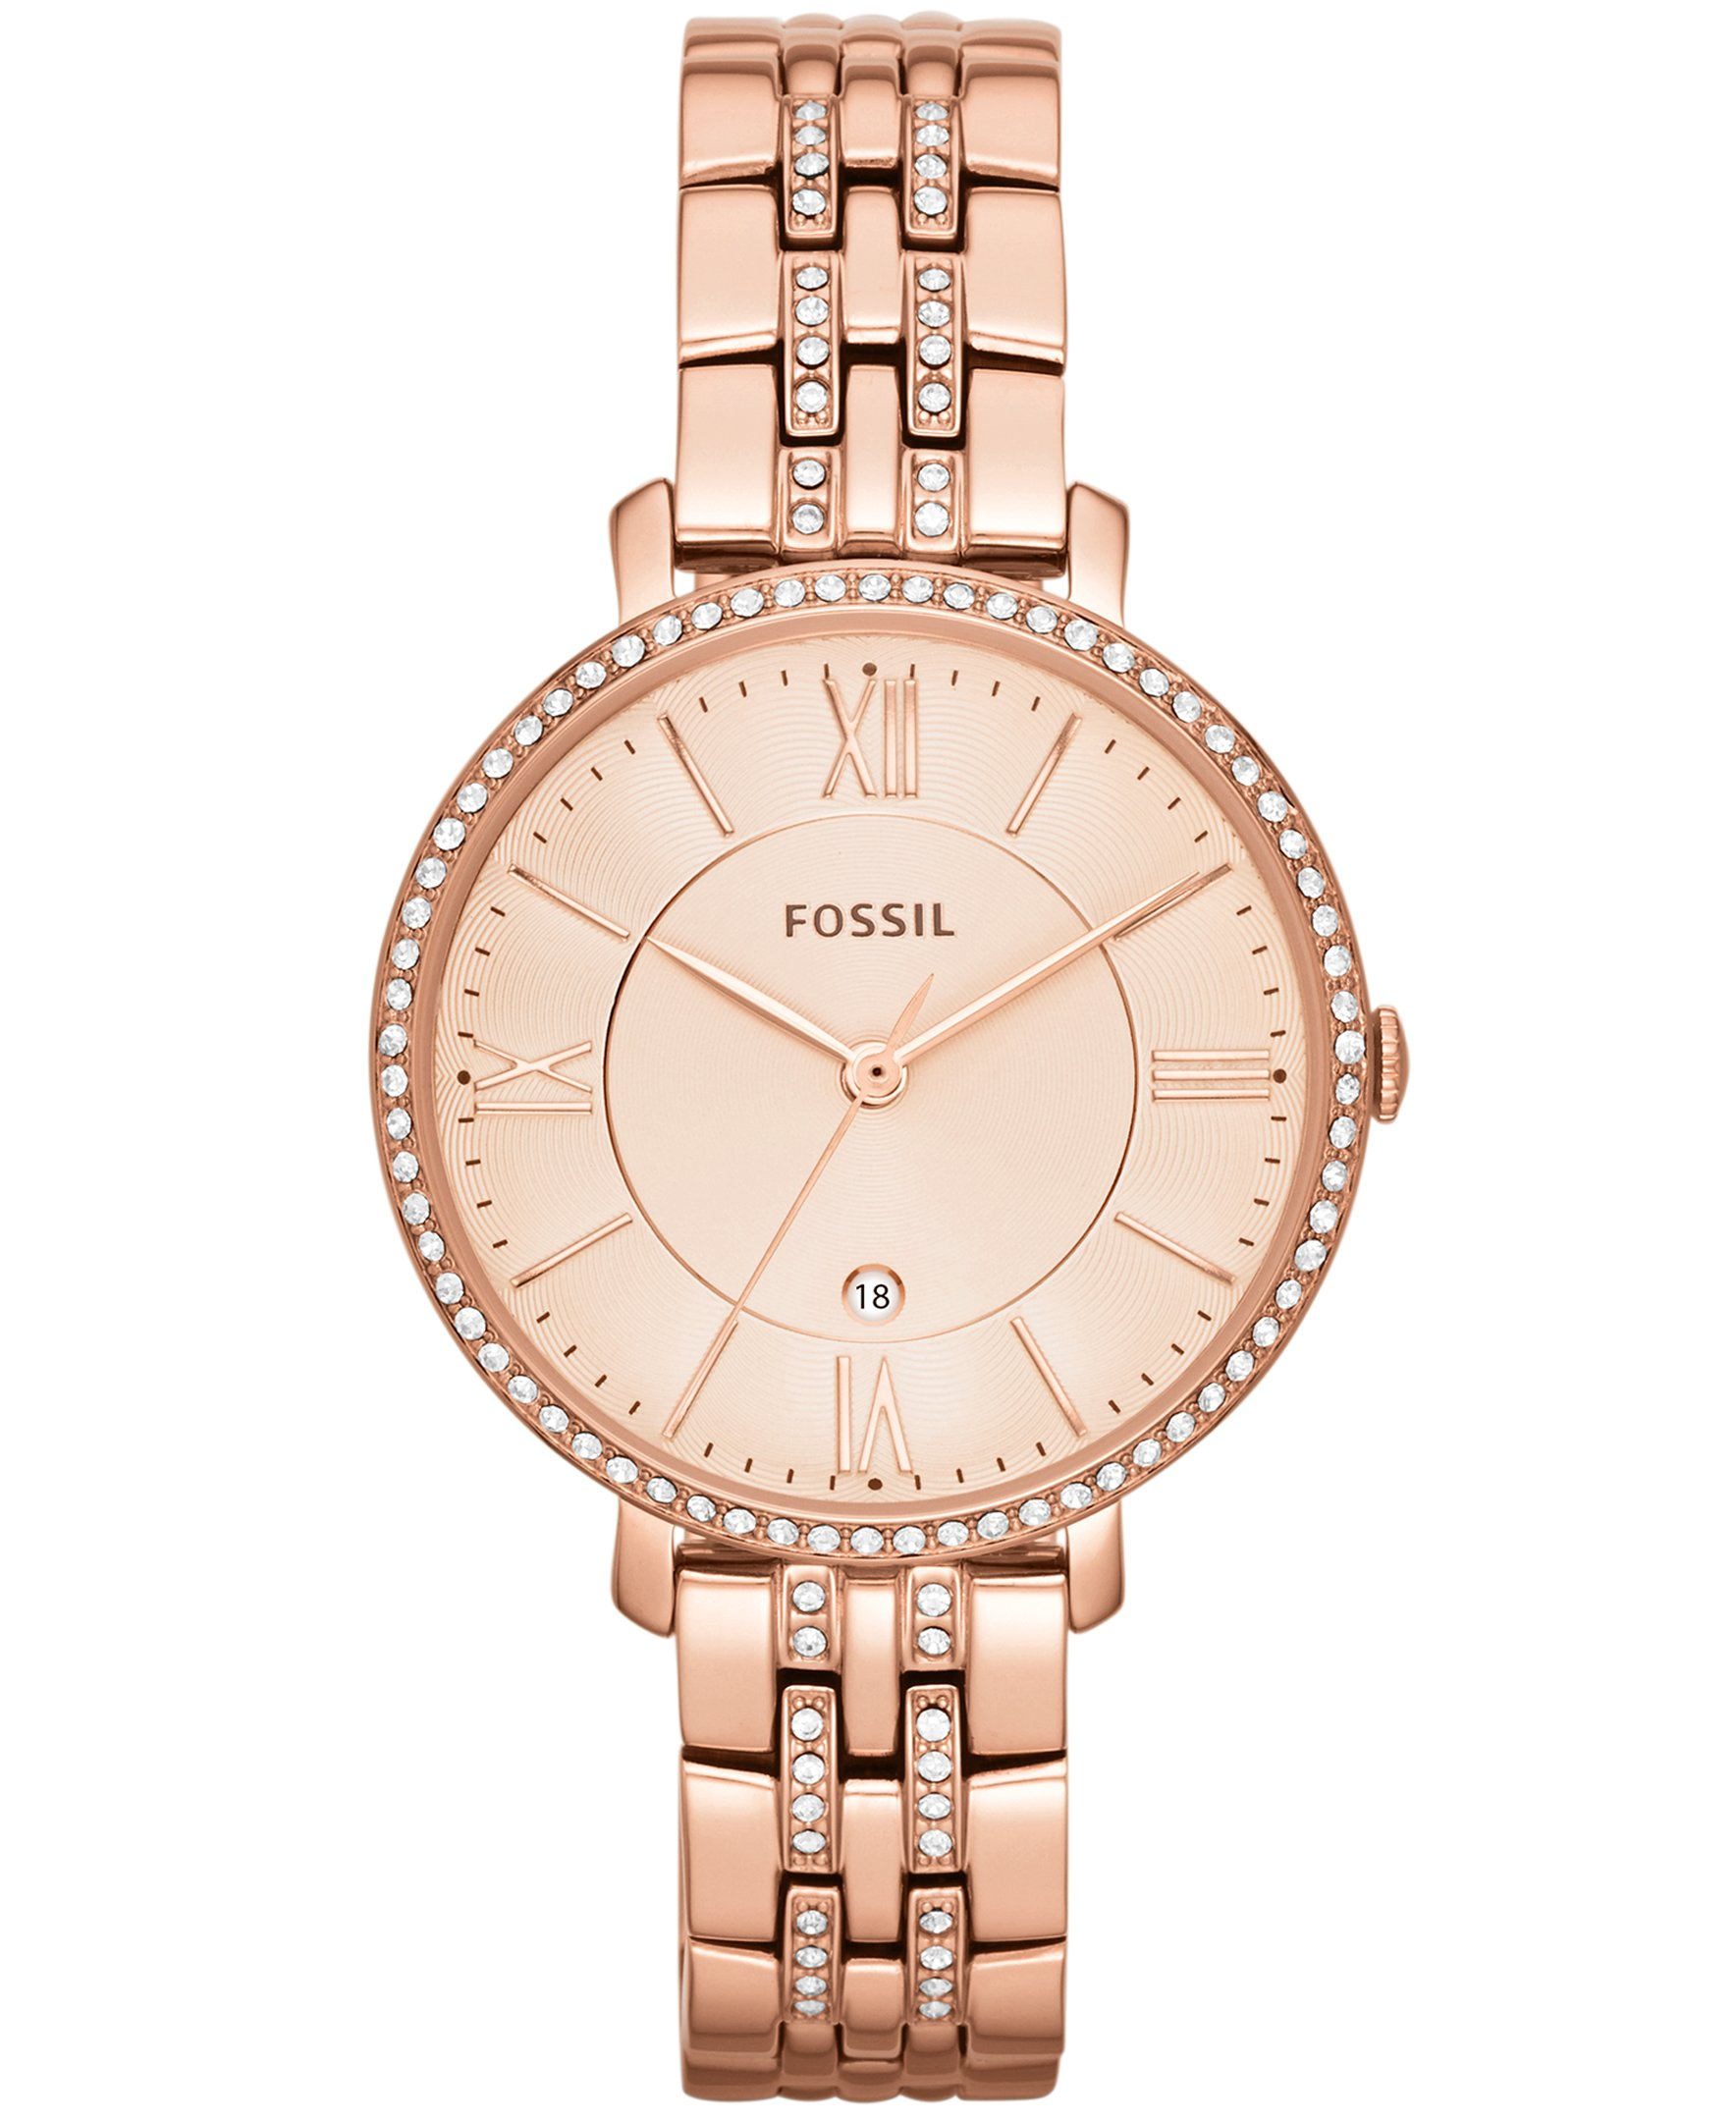 Fossil Jacqueline ES3546 Rose Gold Tone Watch